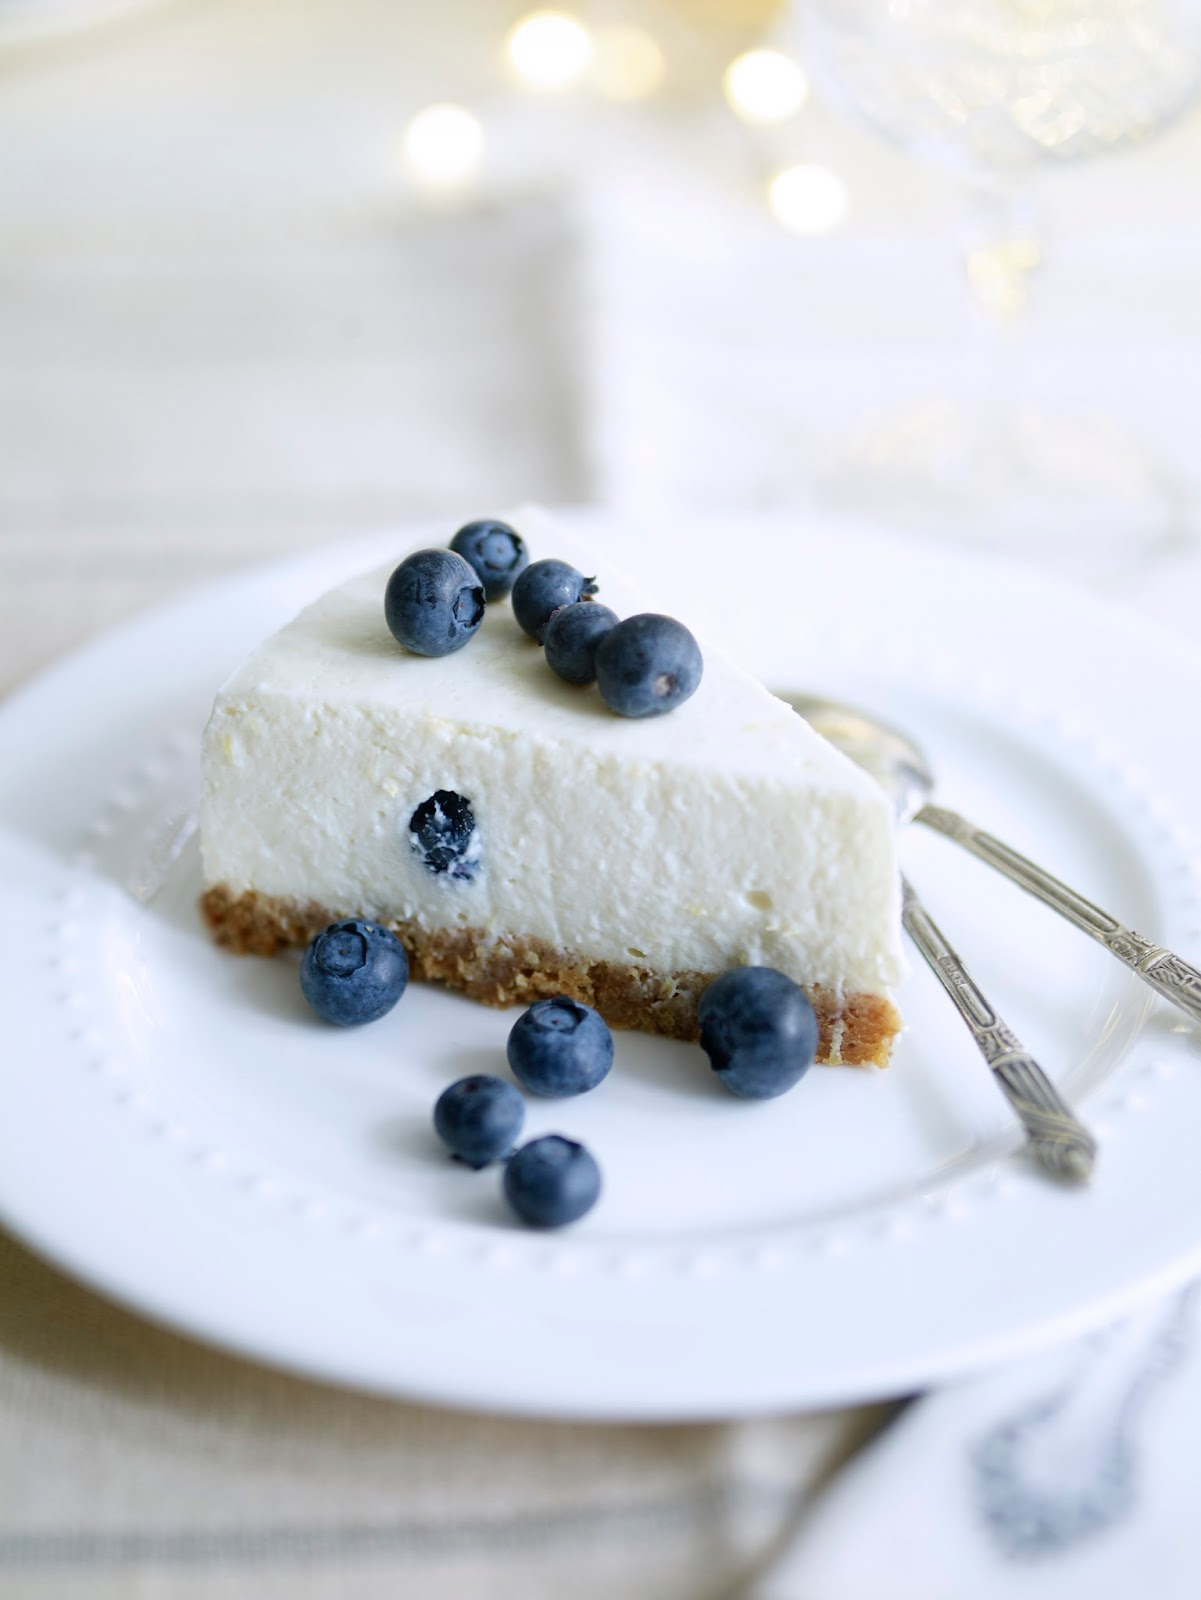 Lemon And Blueberry Cheesecake: Afternoon Tea